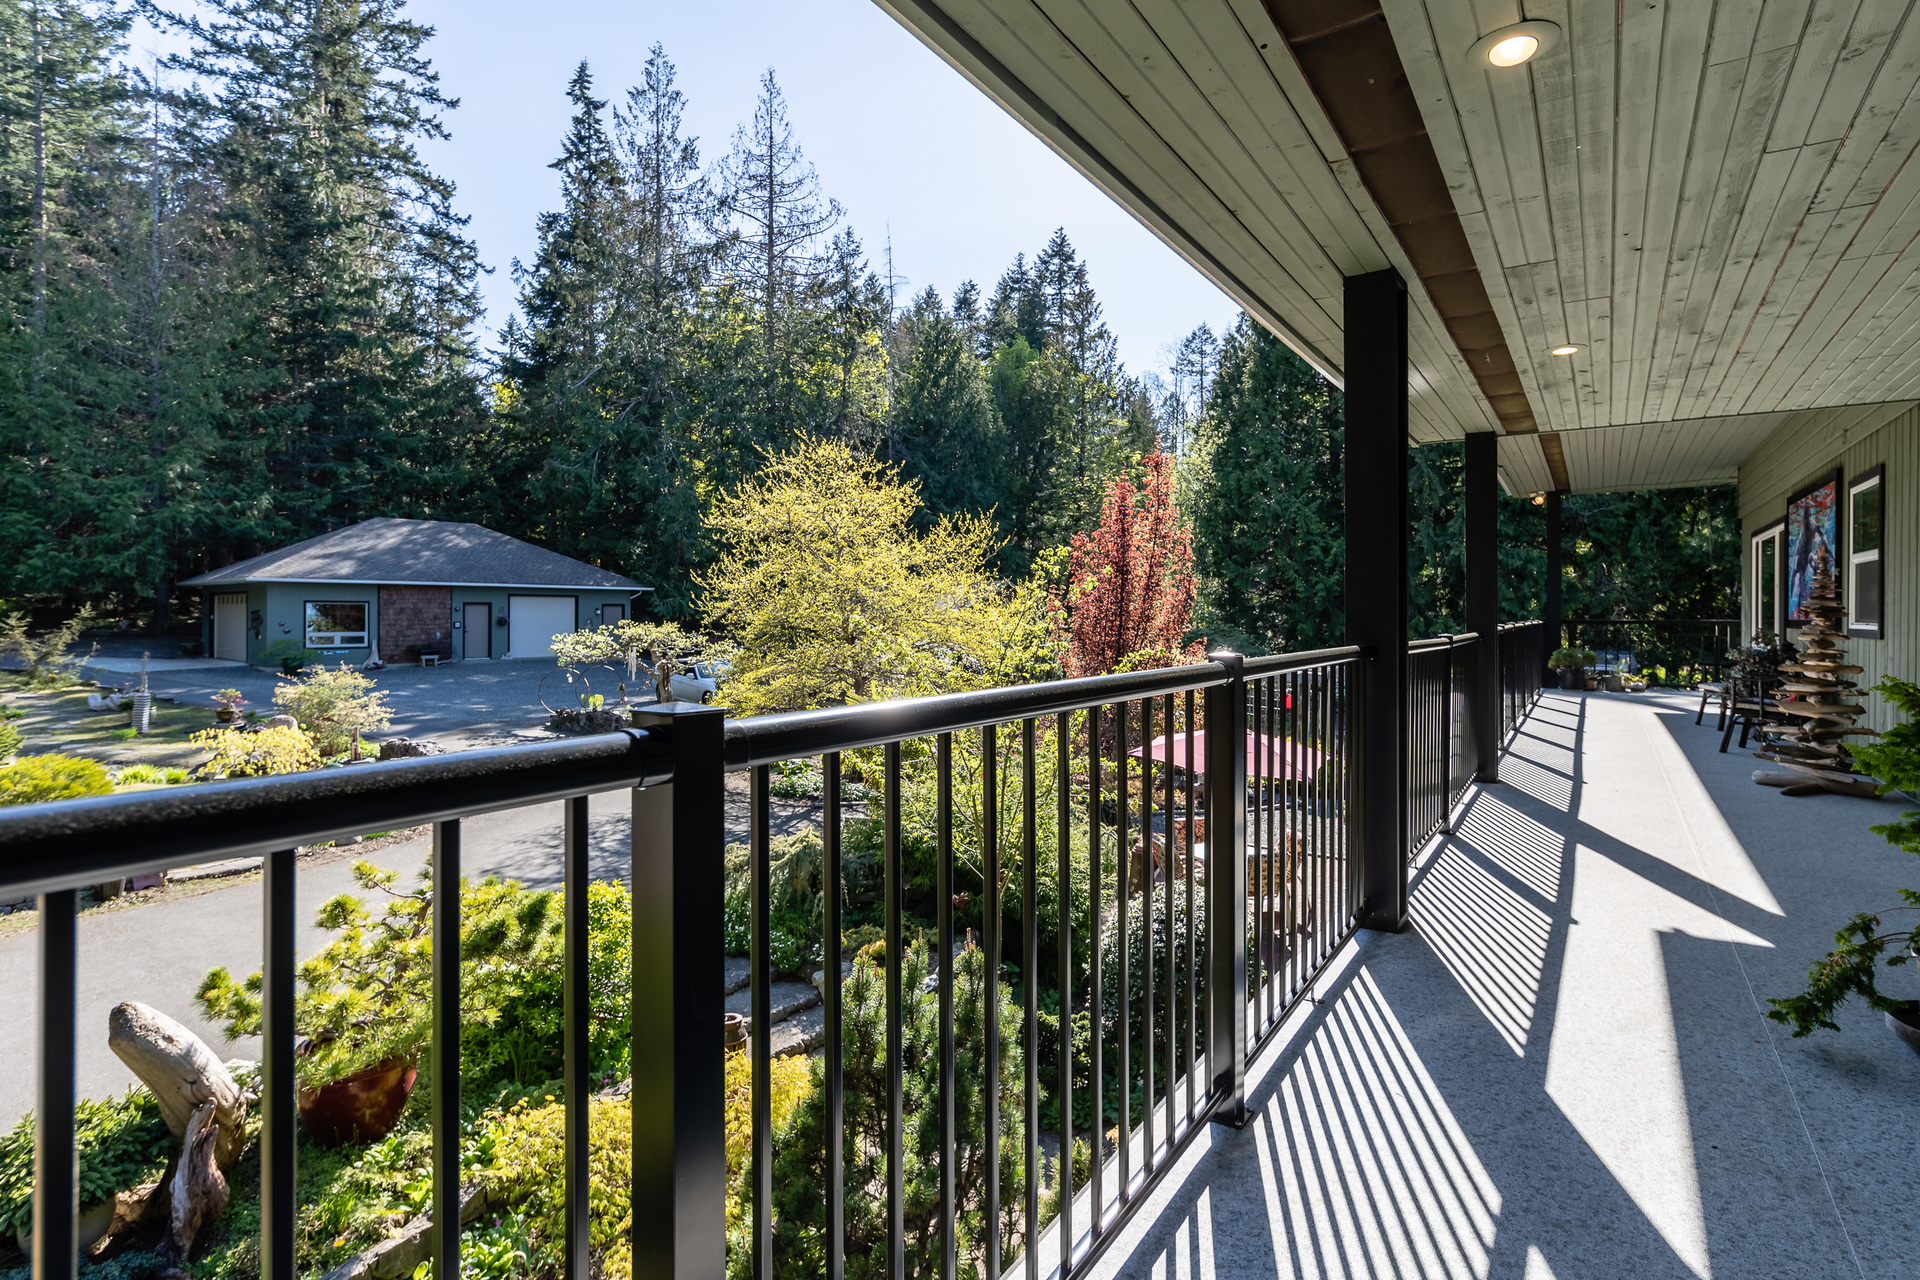 South Wraparound Balcony at 5101 Island Highway West, Qualicum North, Oceanside